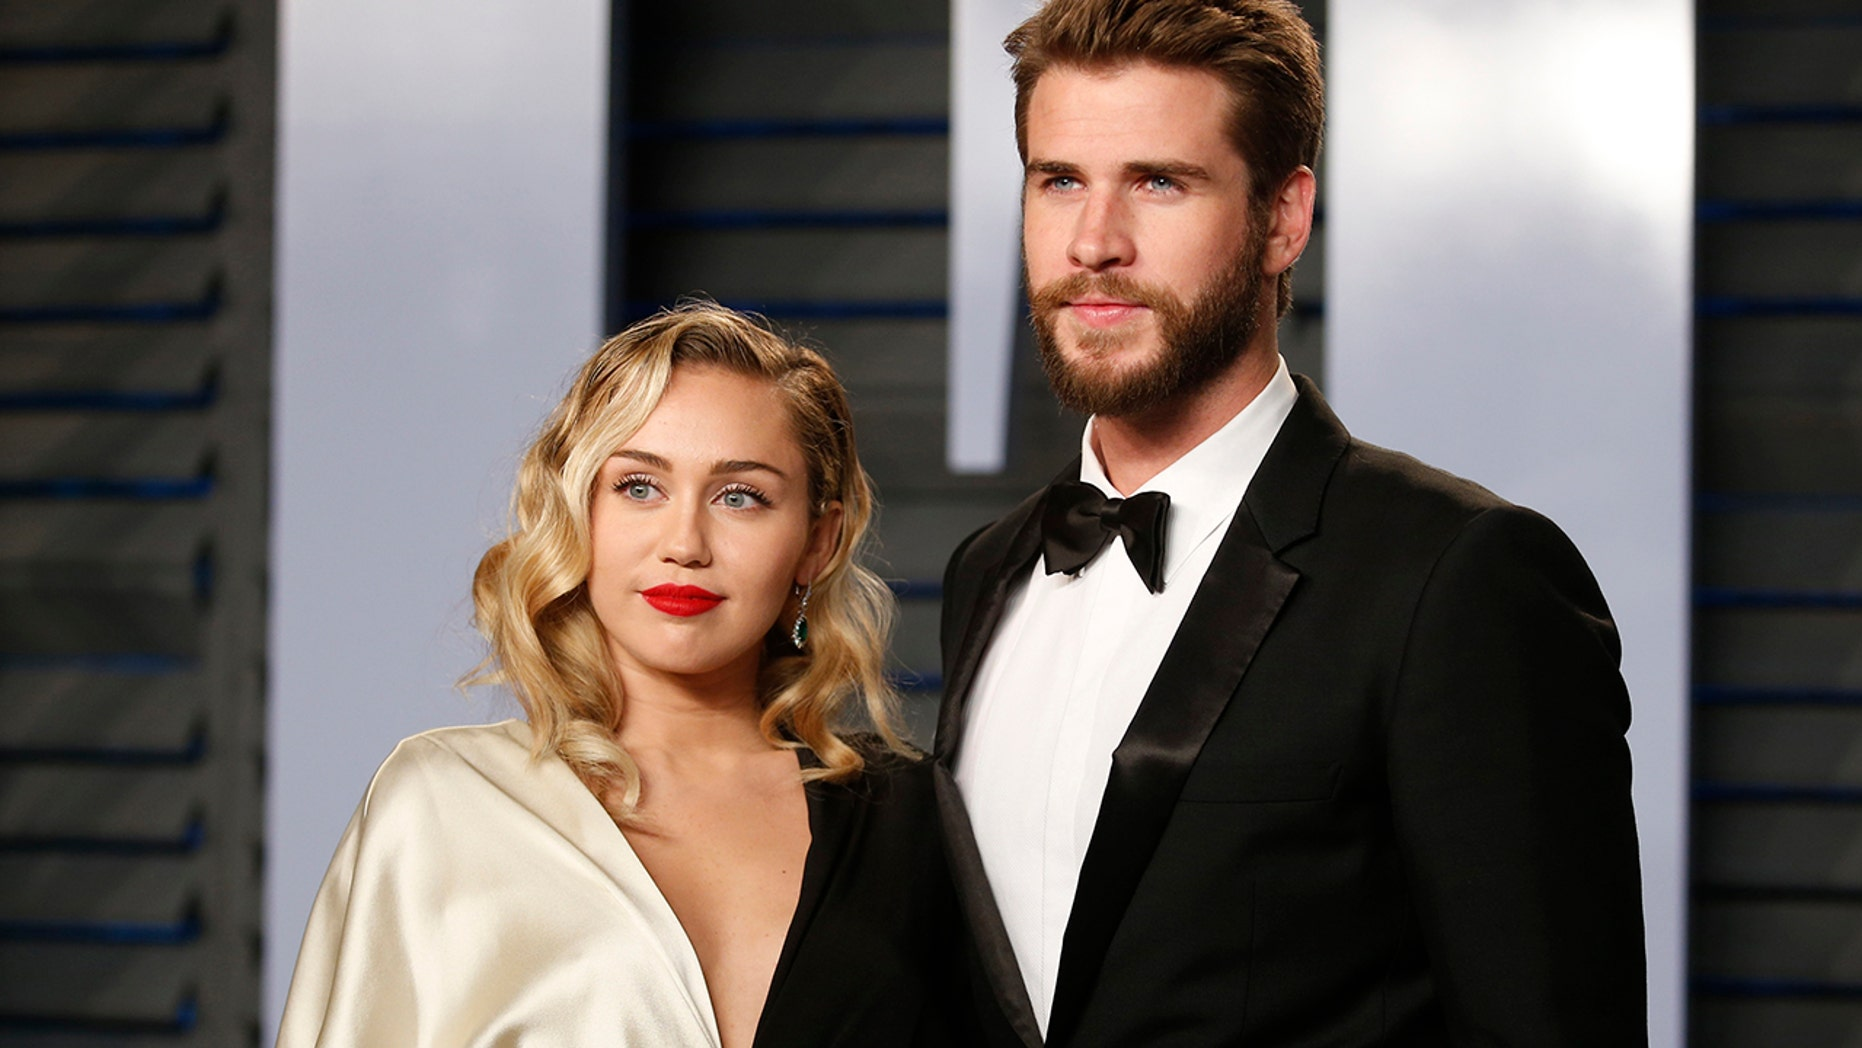 Miley Cyrus and Liam Hemsworth arrive at the 2018 Vanity Fair Oscar Part on March 04, 2018.